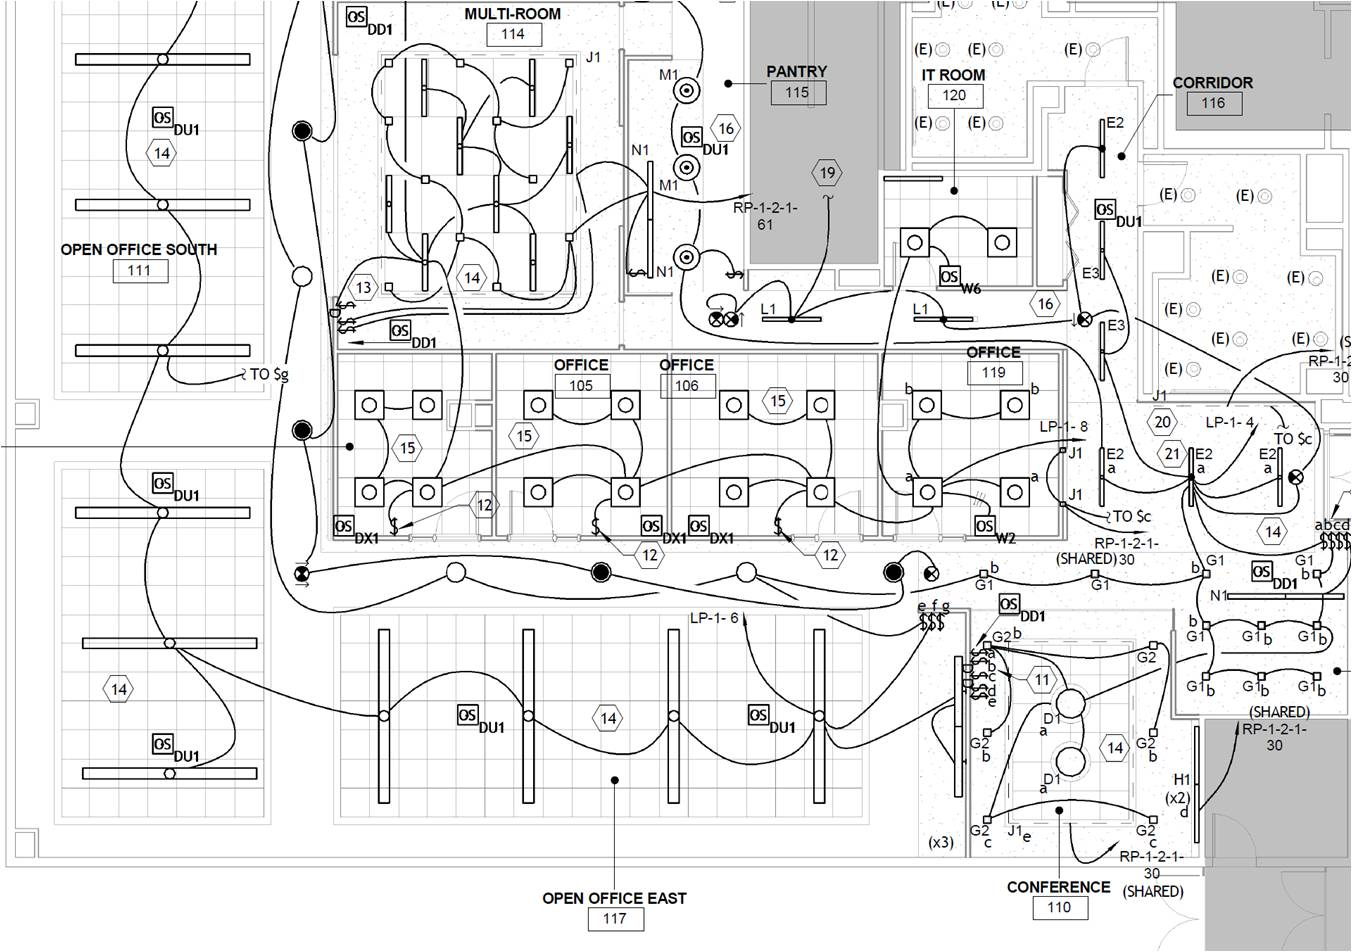 How To Read Mep Drawings - Auto Electrical Wiring Diagram